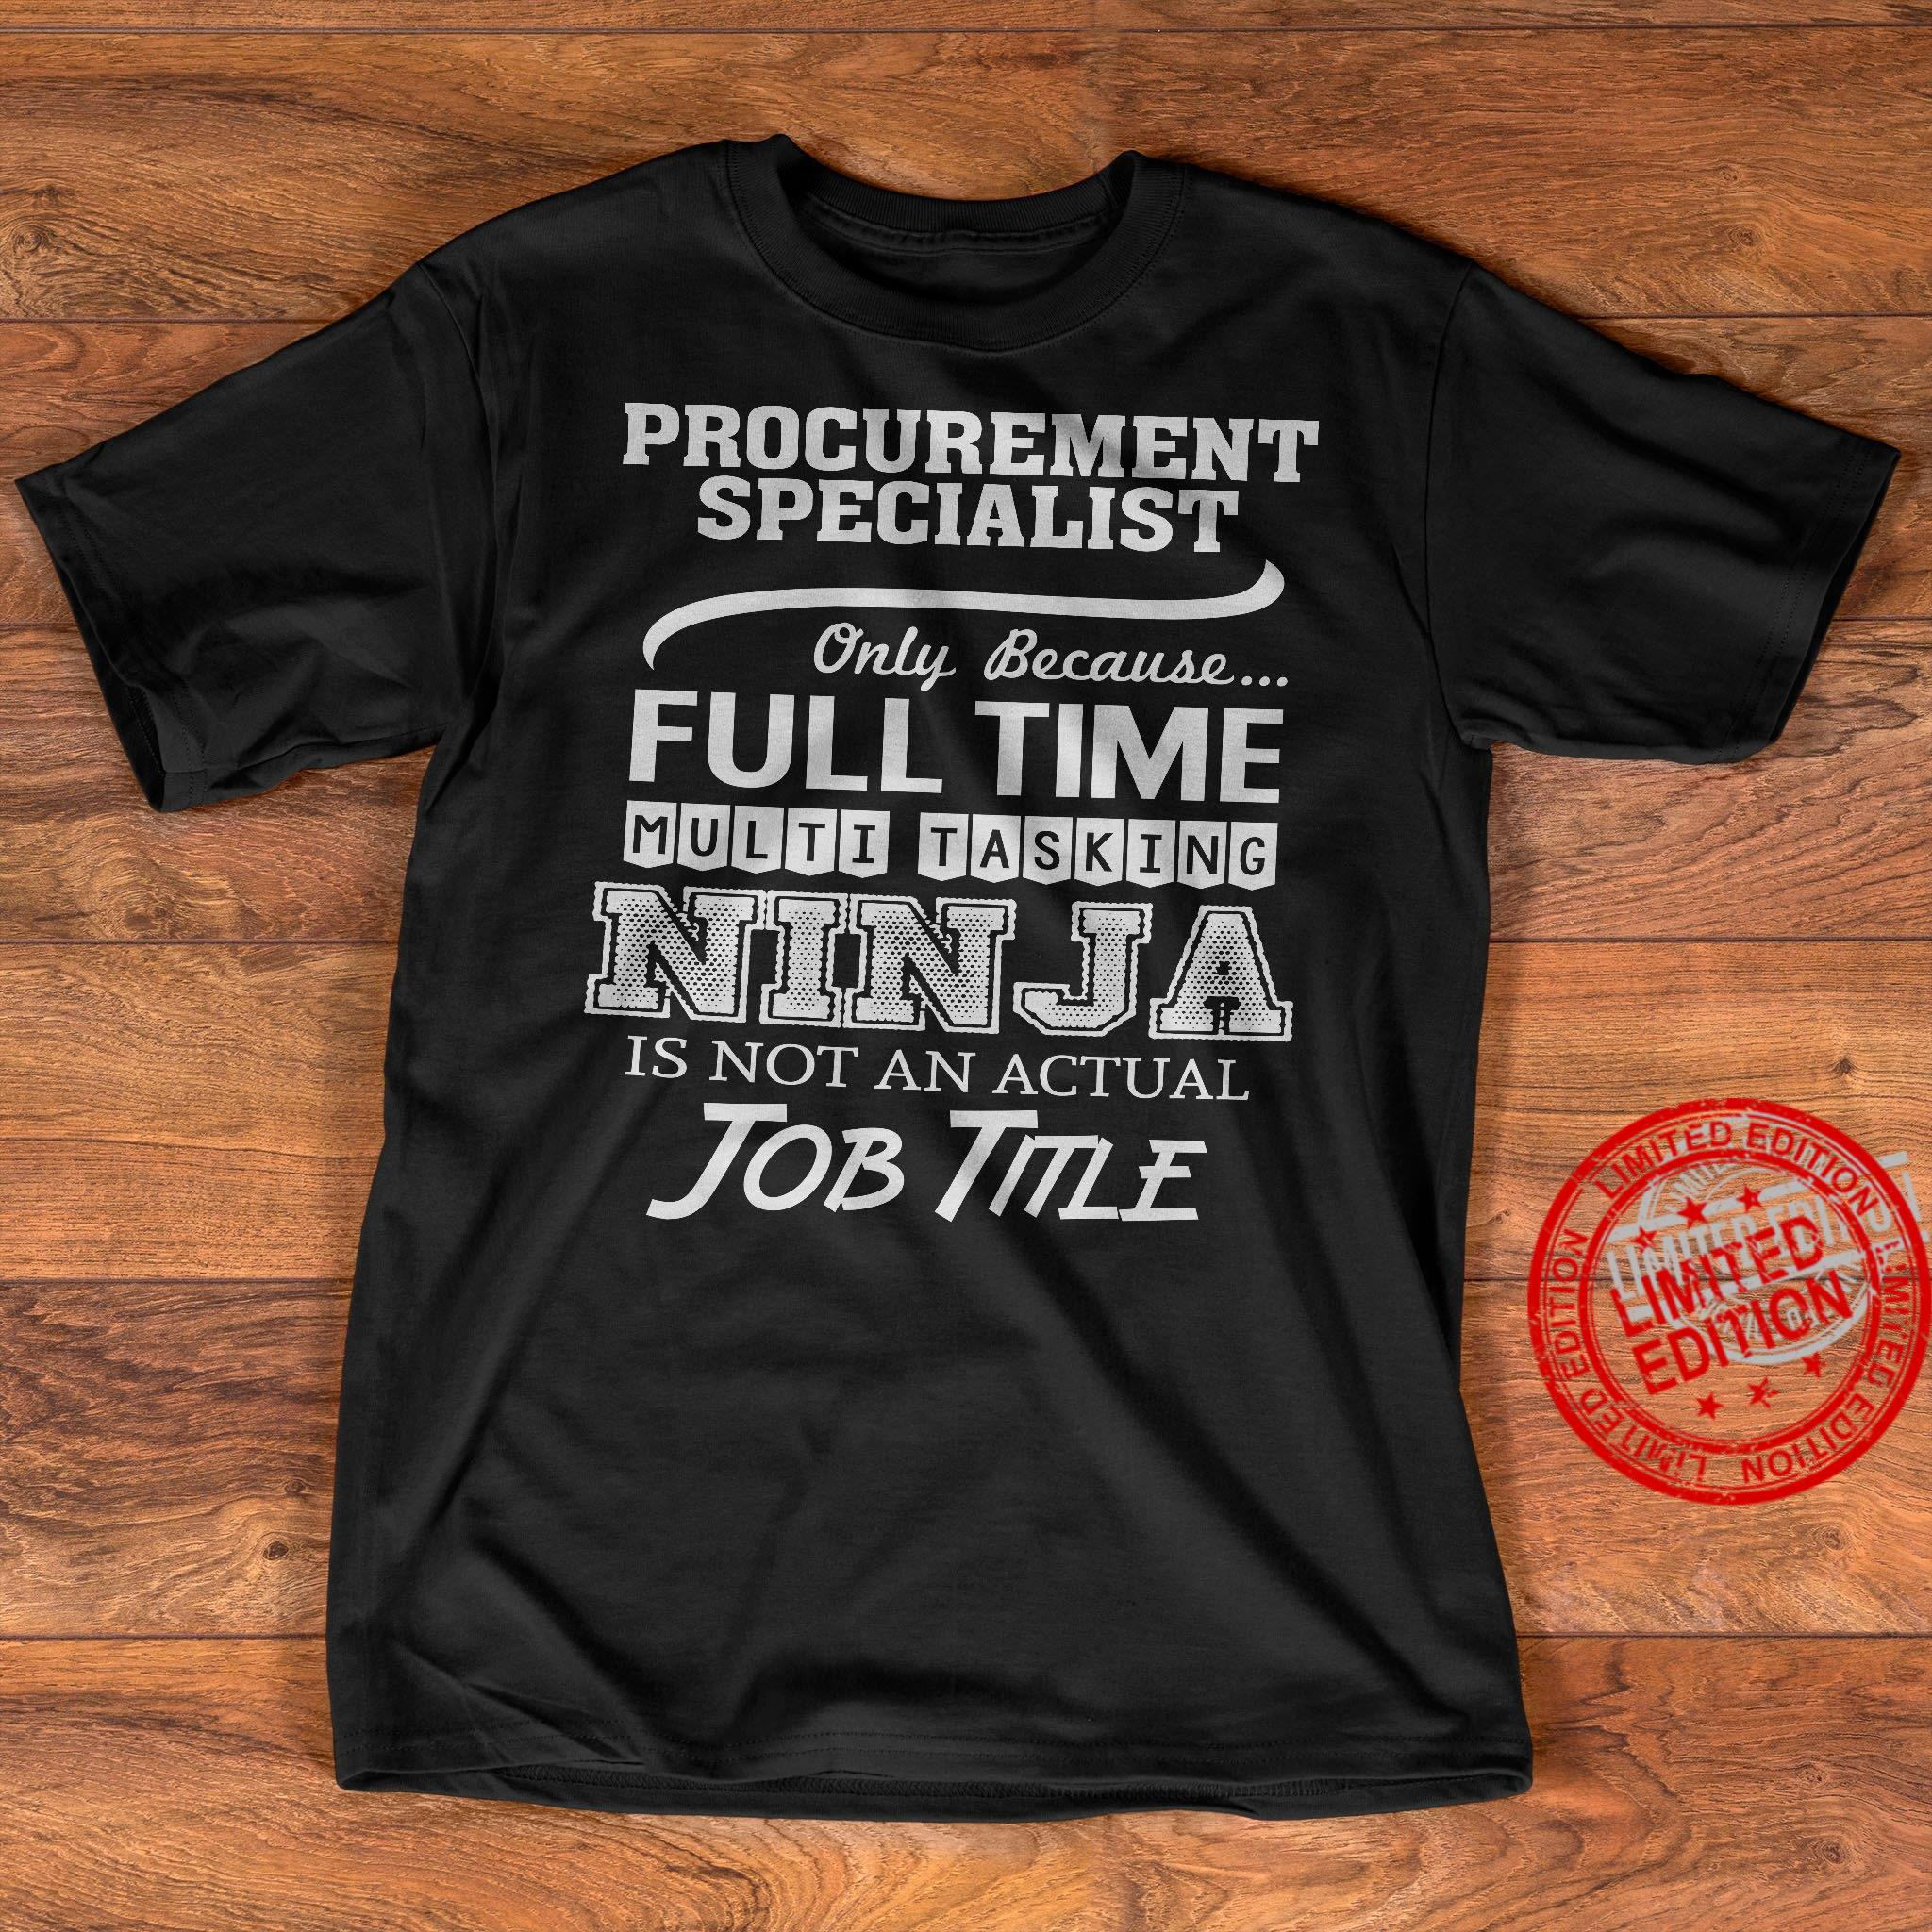 Procurement Specialist Only Because Full Time Multi Tasking Nin Ja Is Not An Actual Job Title Shirt